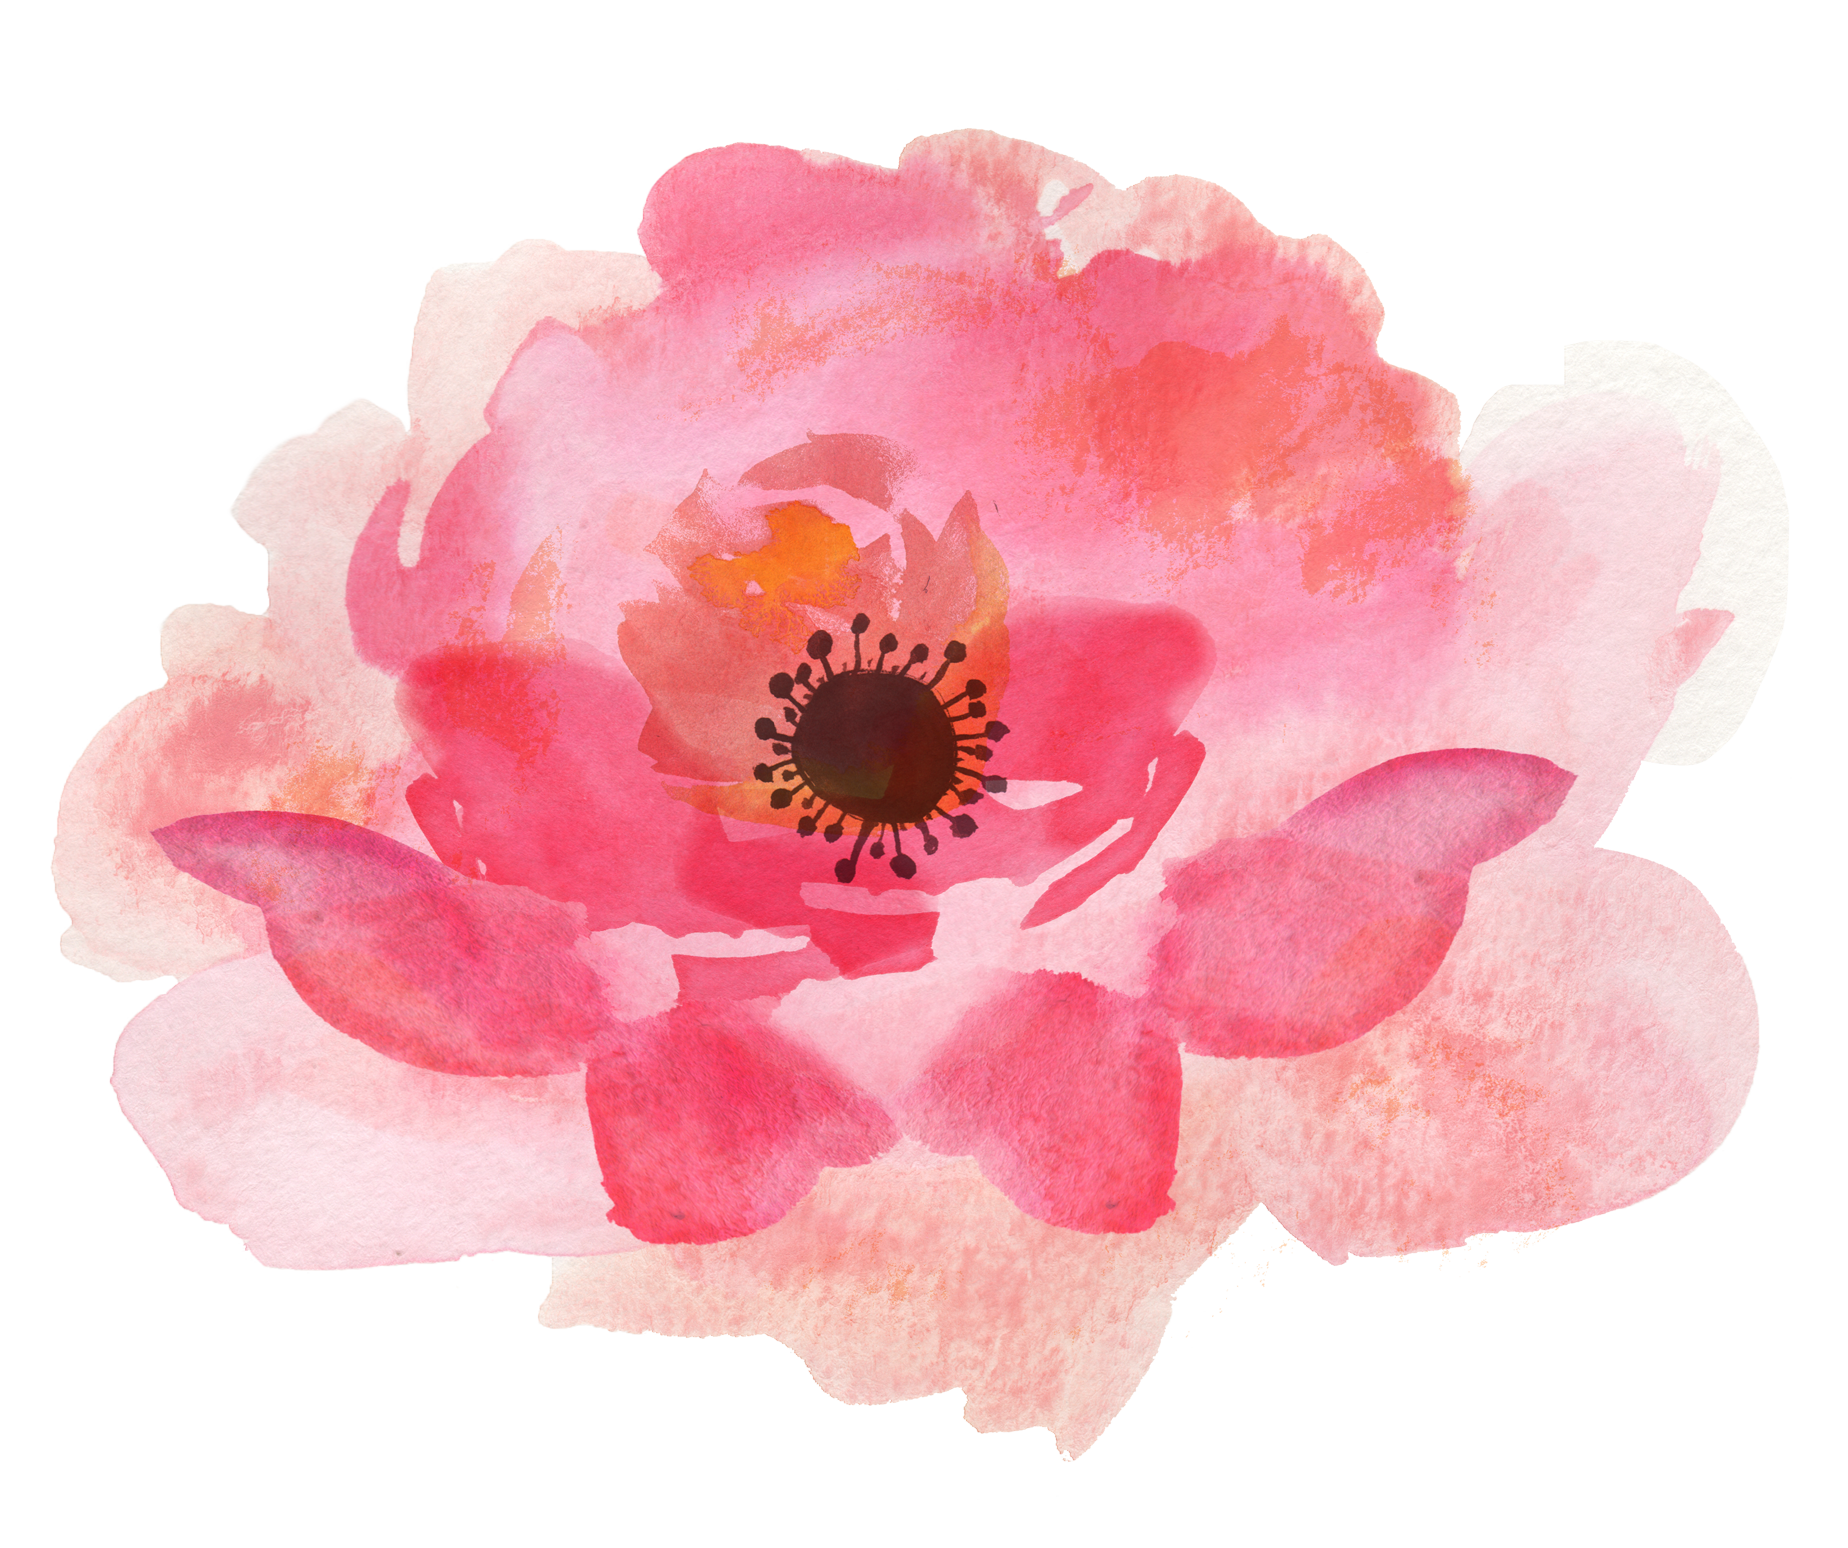 Flowers high quality free. Pink watercolor flower png image library stock